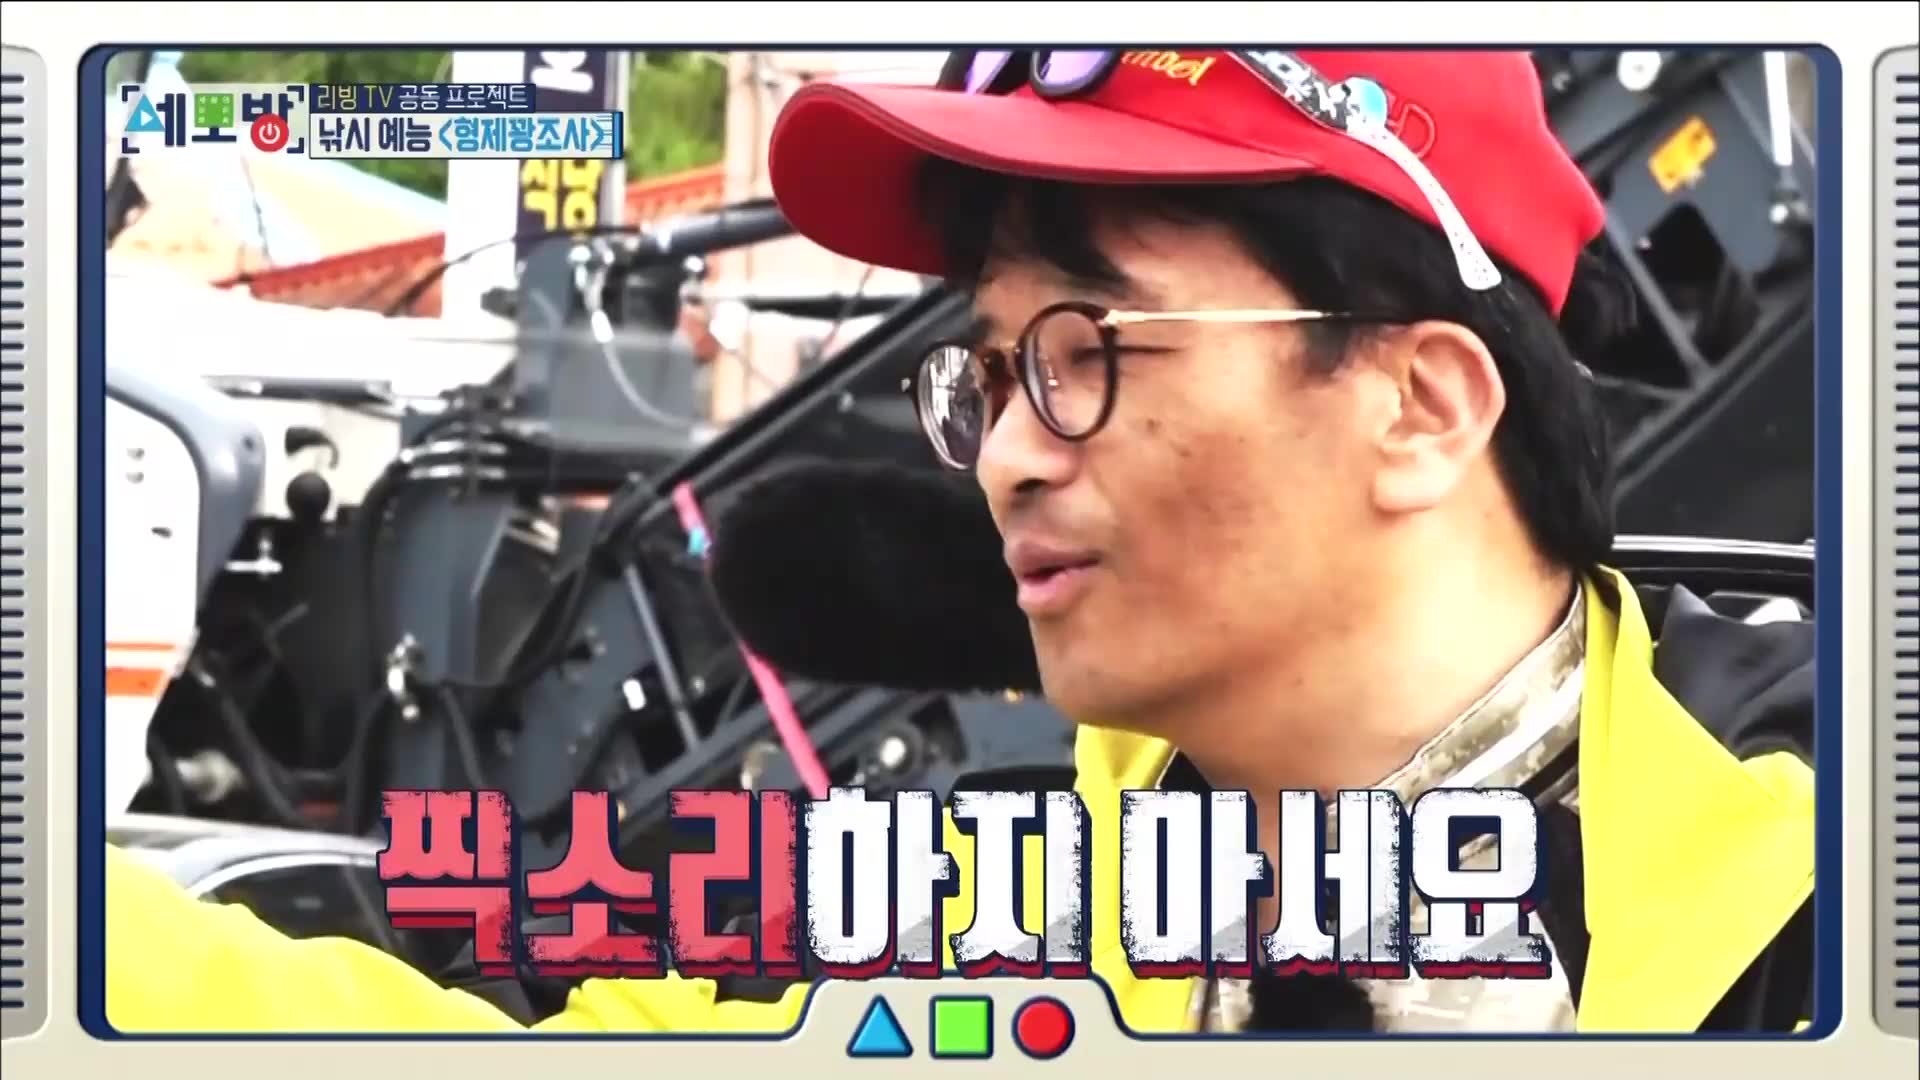 All Broadcasts of the World Episode 2